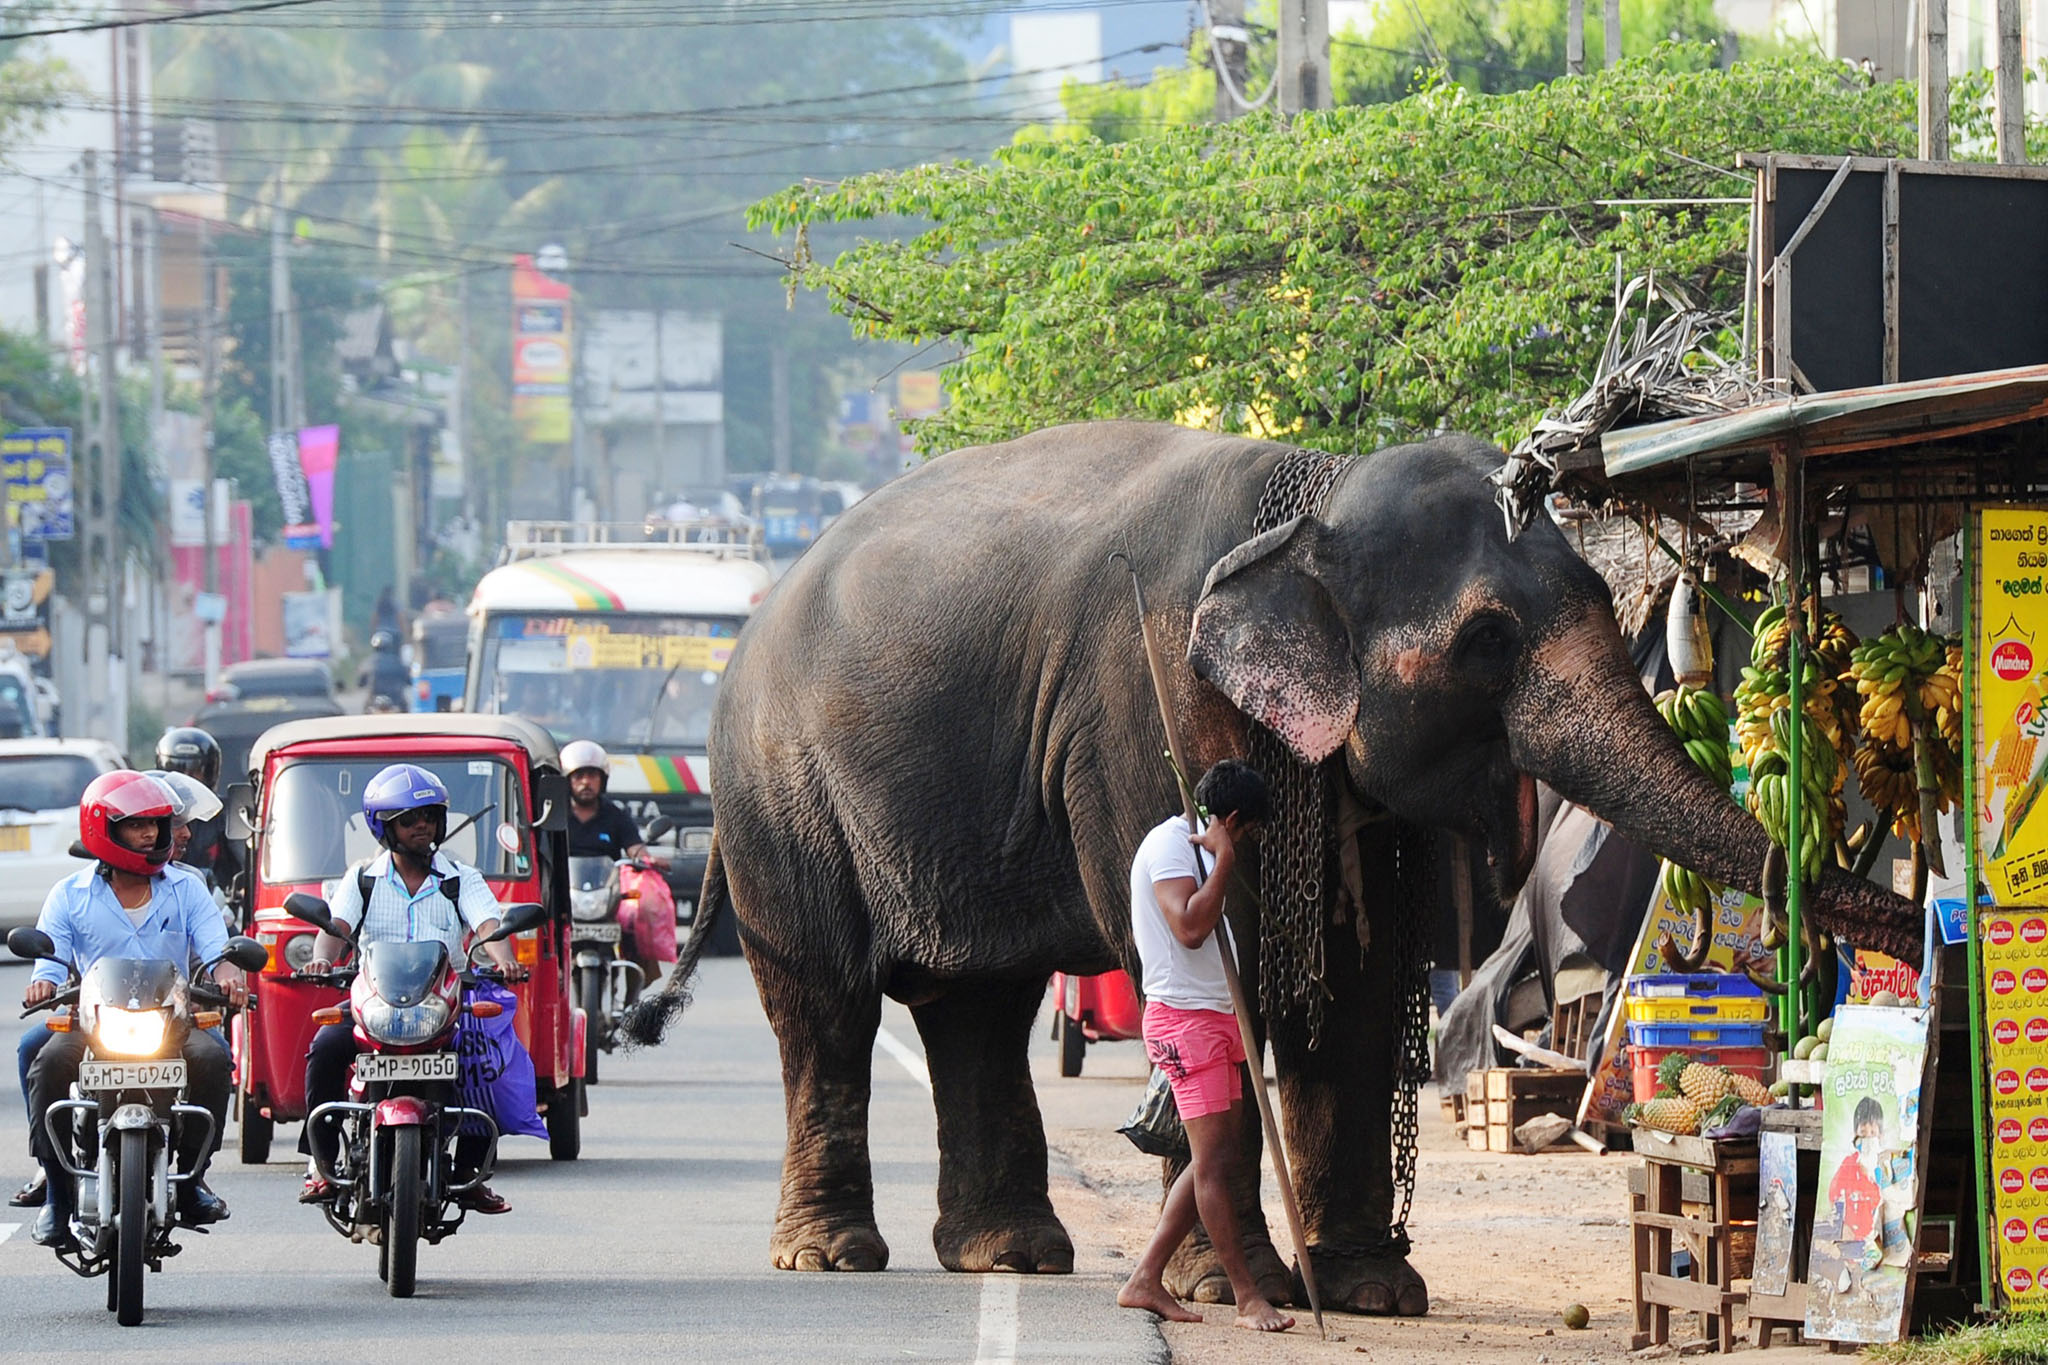 A Sri Lankan elephant, accompanied by hi...A Sri Lankan elephant, accompanied by his mahout, browse through a roadside fruit stall in Colombo on January 19, 2015. The Sri Lankan elephant is listed as endangered by the International Union for Conservation of Nature (IUCN) as the population has declined by at least 50 percent over the last three generations, with the species threatened by habitat loss, degradation and fragmentation. AFP PHOTO / LAKRUWAN WANNIARACHCHILAKRUWAN WANNIARACHCHI/AFP/Getty Images